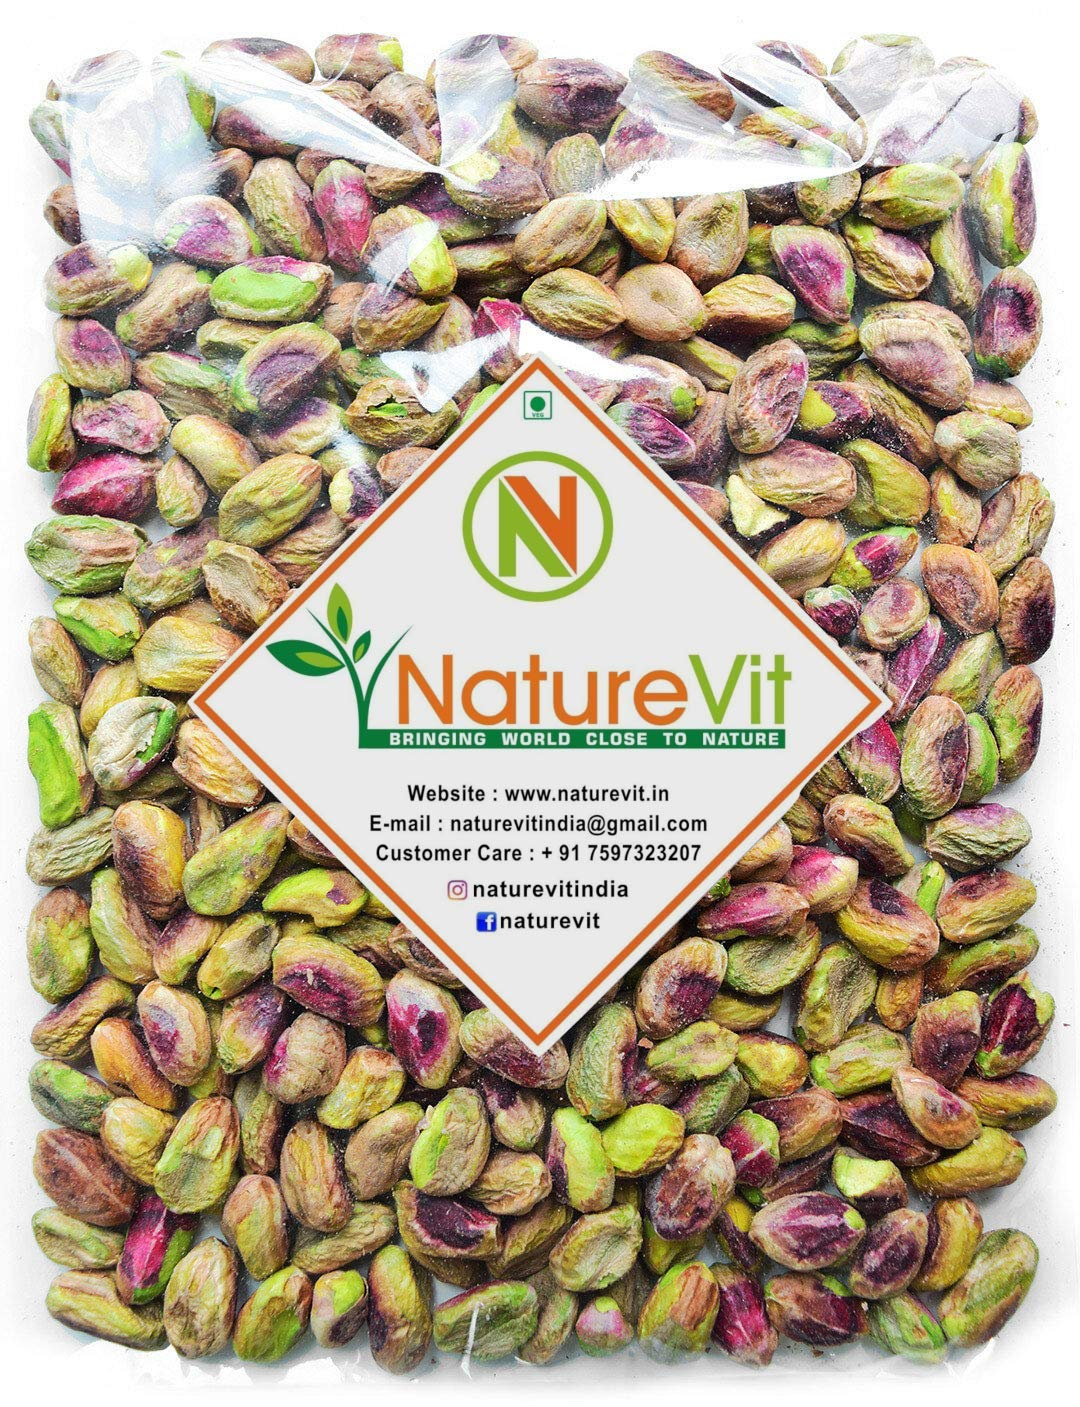 Nature Vit Pistachios Without Shell, 900 gm (Unsalted and Jumbo Sized)